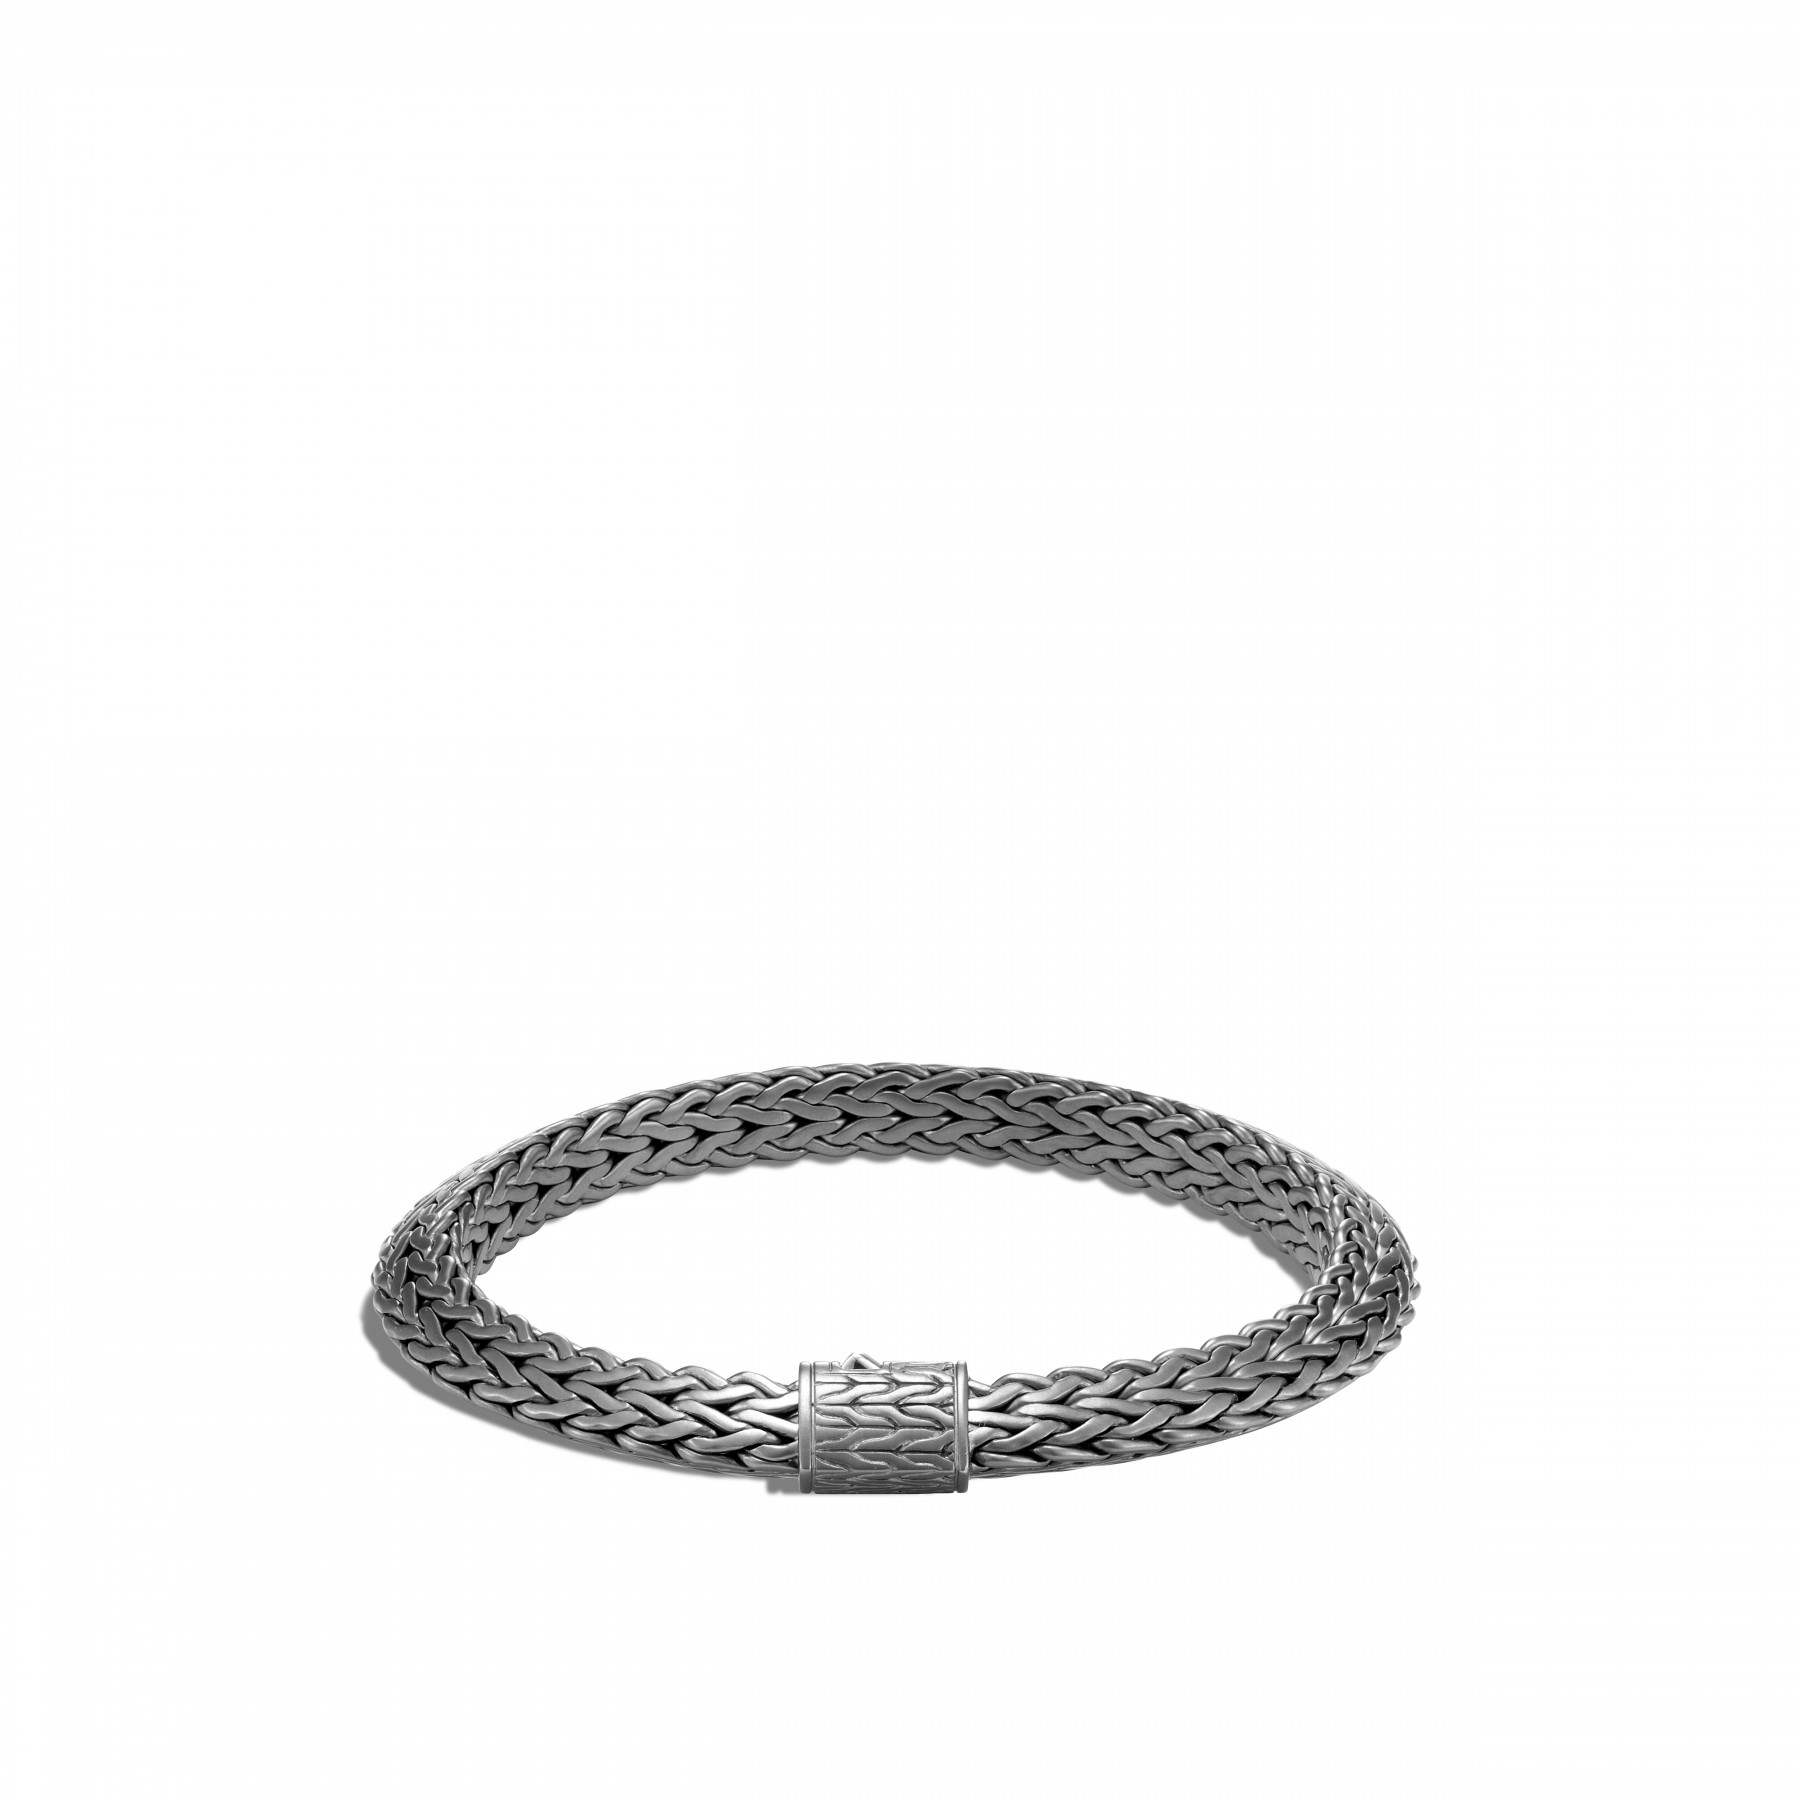 John Hardy Classic Chain Silver and Black Rhodium Bracelet - 8mm front view